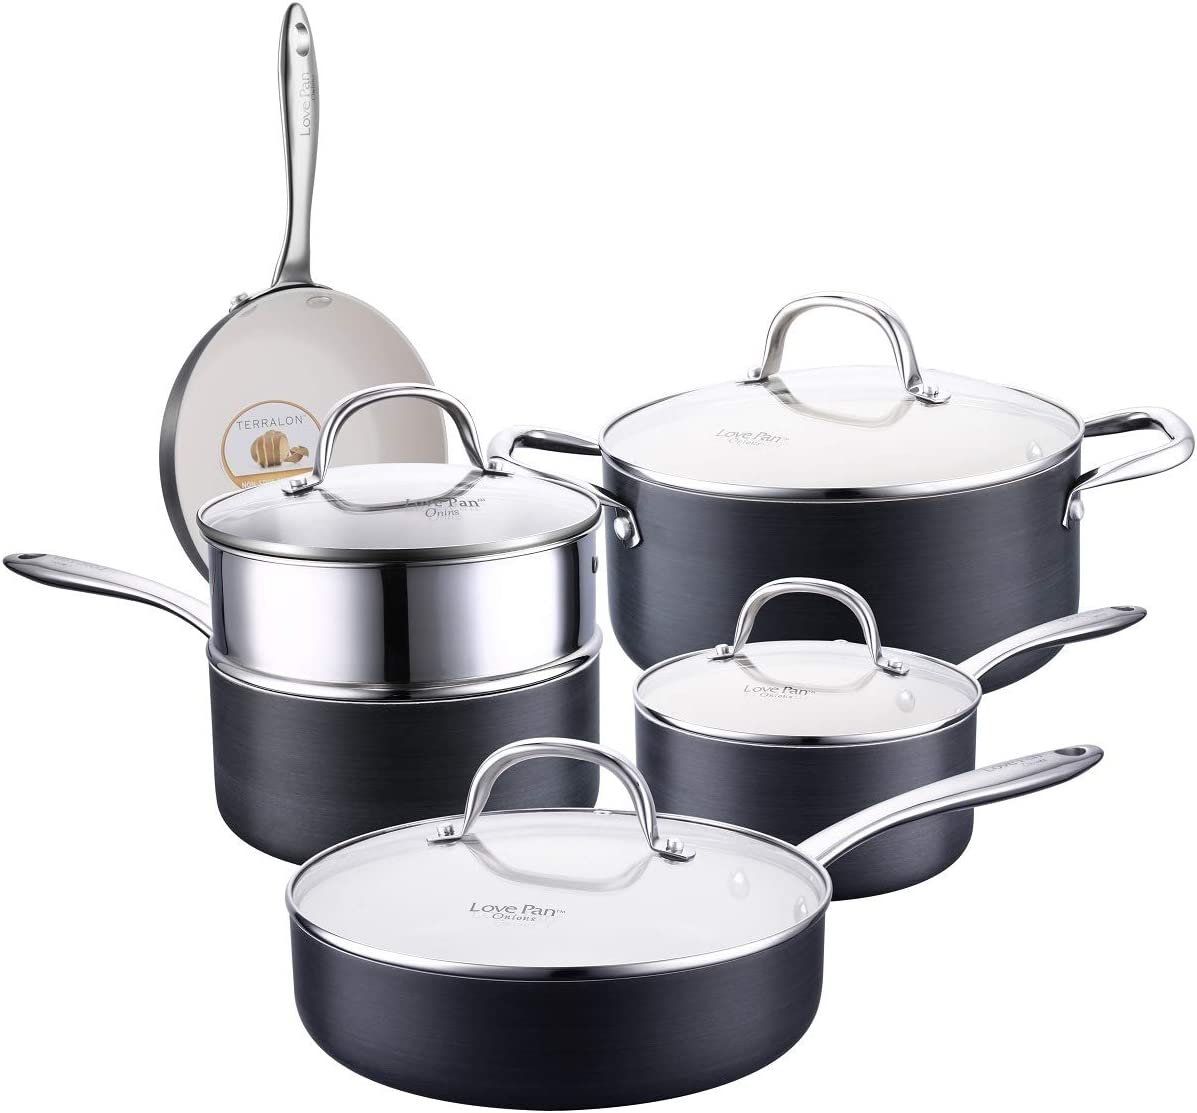 LOVE PAN 10 Piece Black Hard Anodized Aluminium Nonstick Cookware Set-Nonstick Ceramic Pots and Pans Set with Sturdy Glass Lids Sauce Pan with Steamer Insert